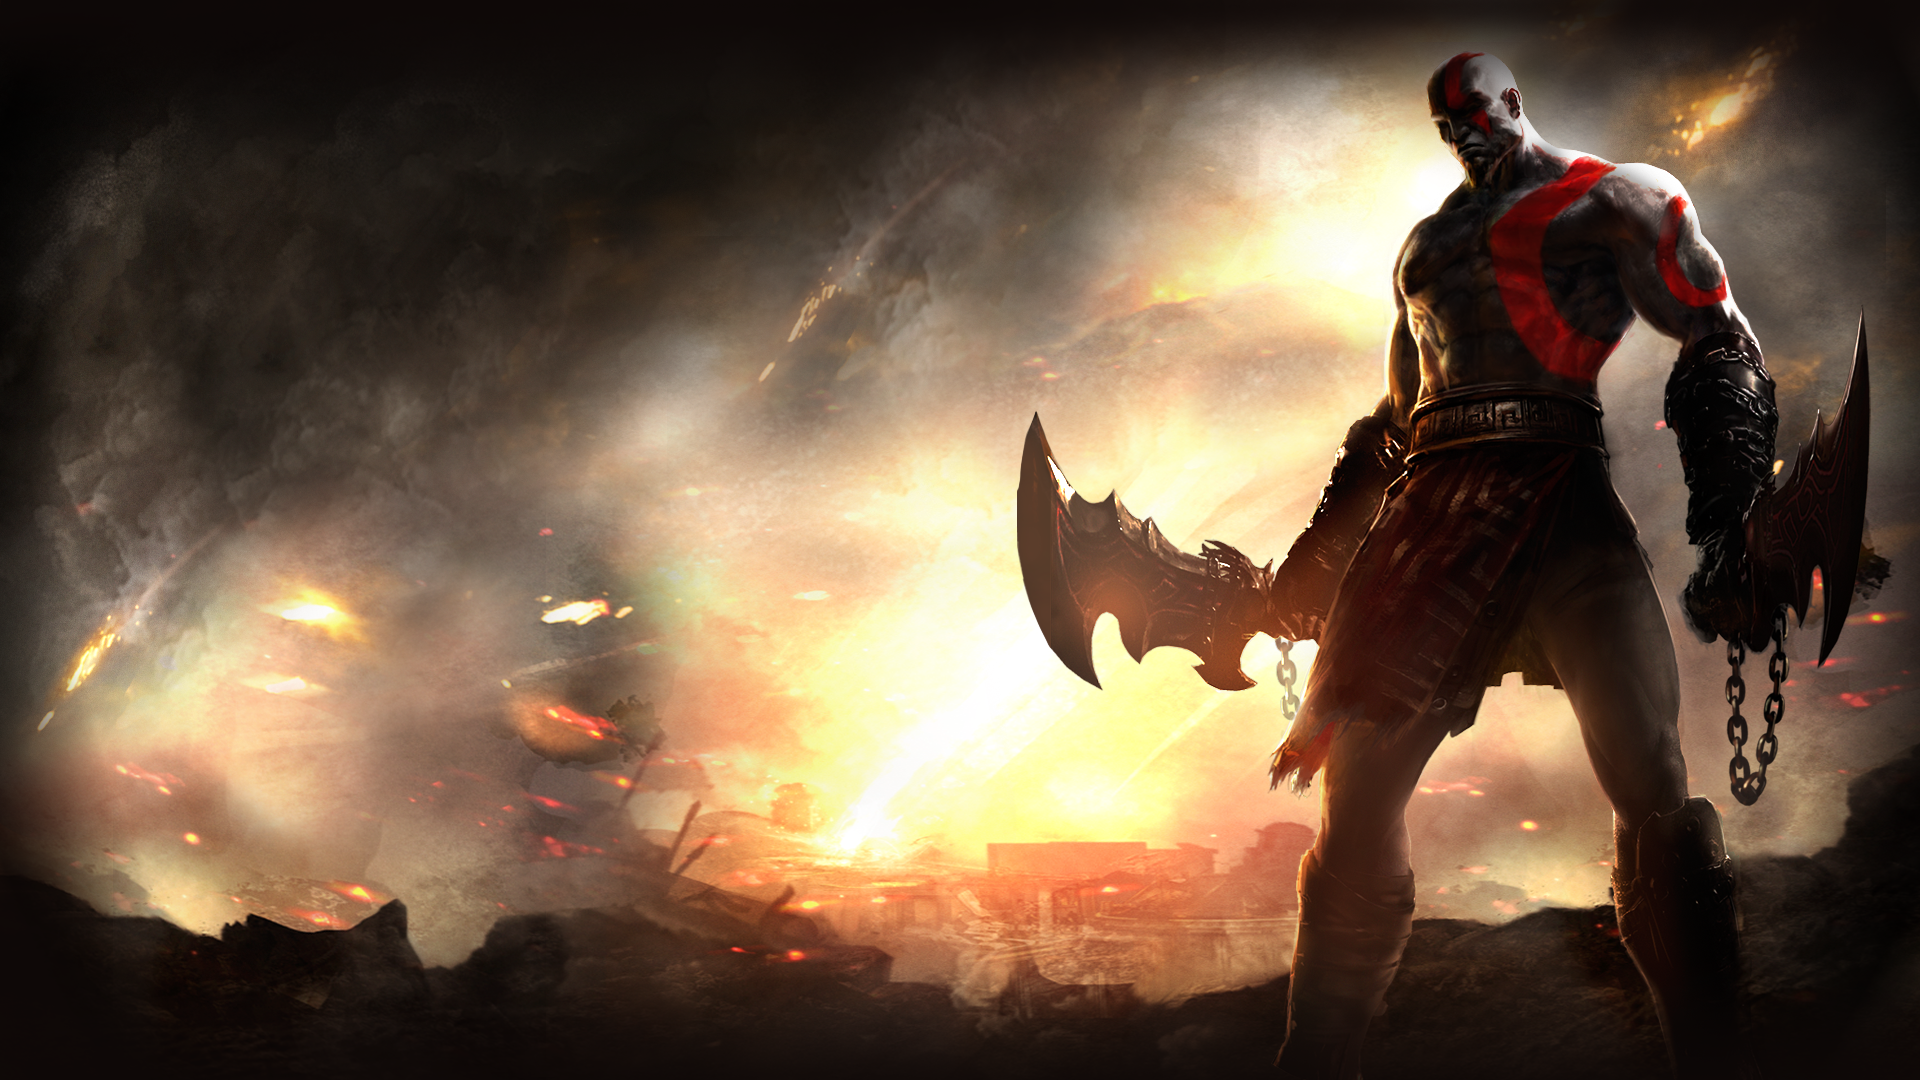 Free Download God Of War Wallpapers High Quality Download